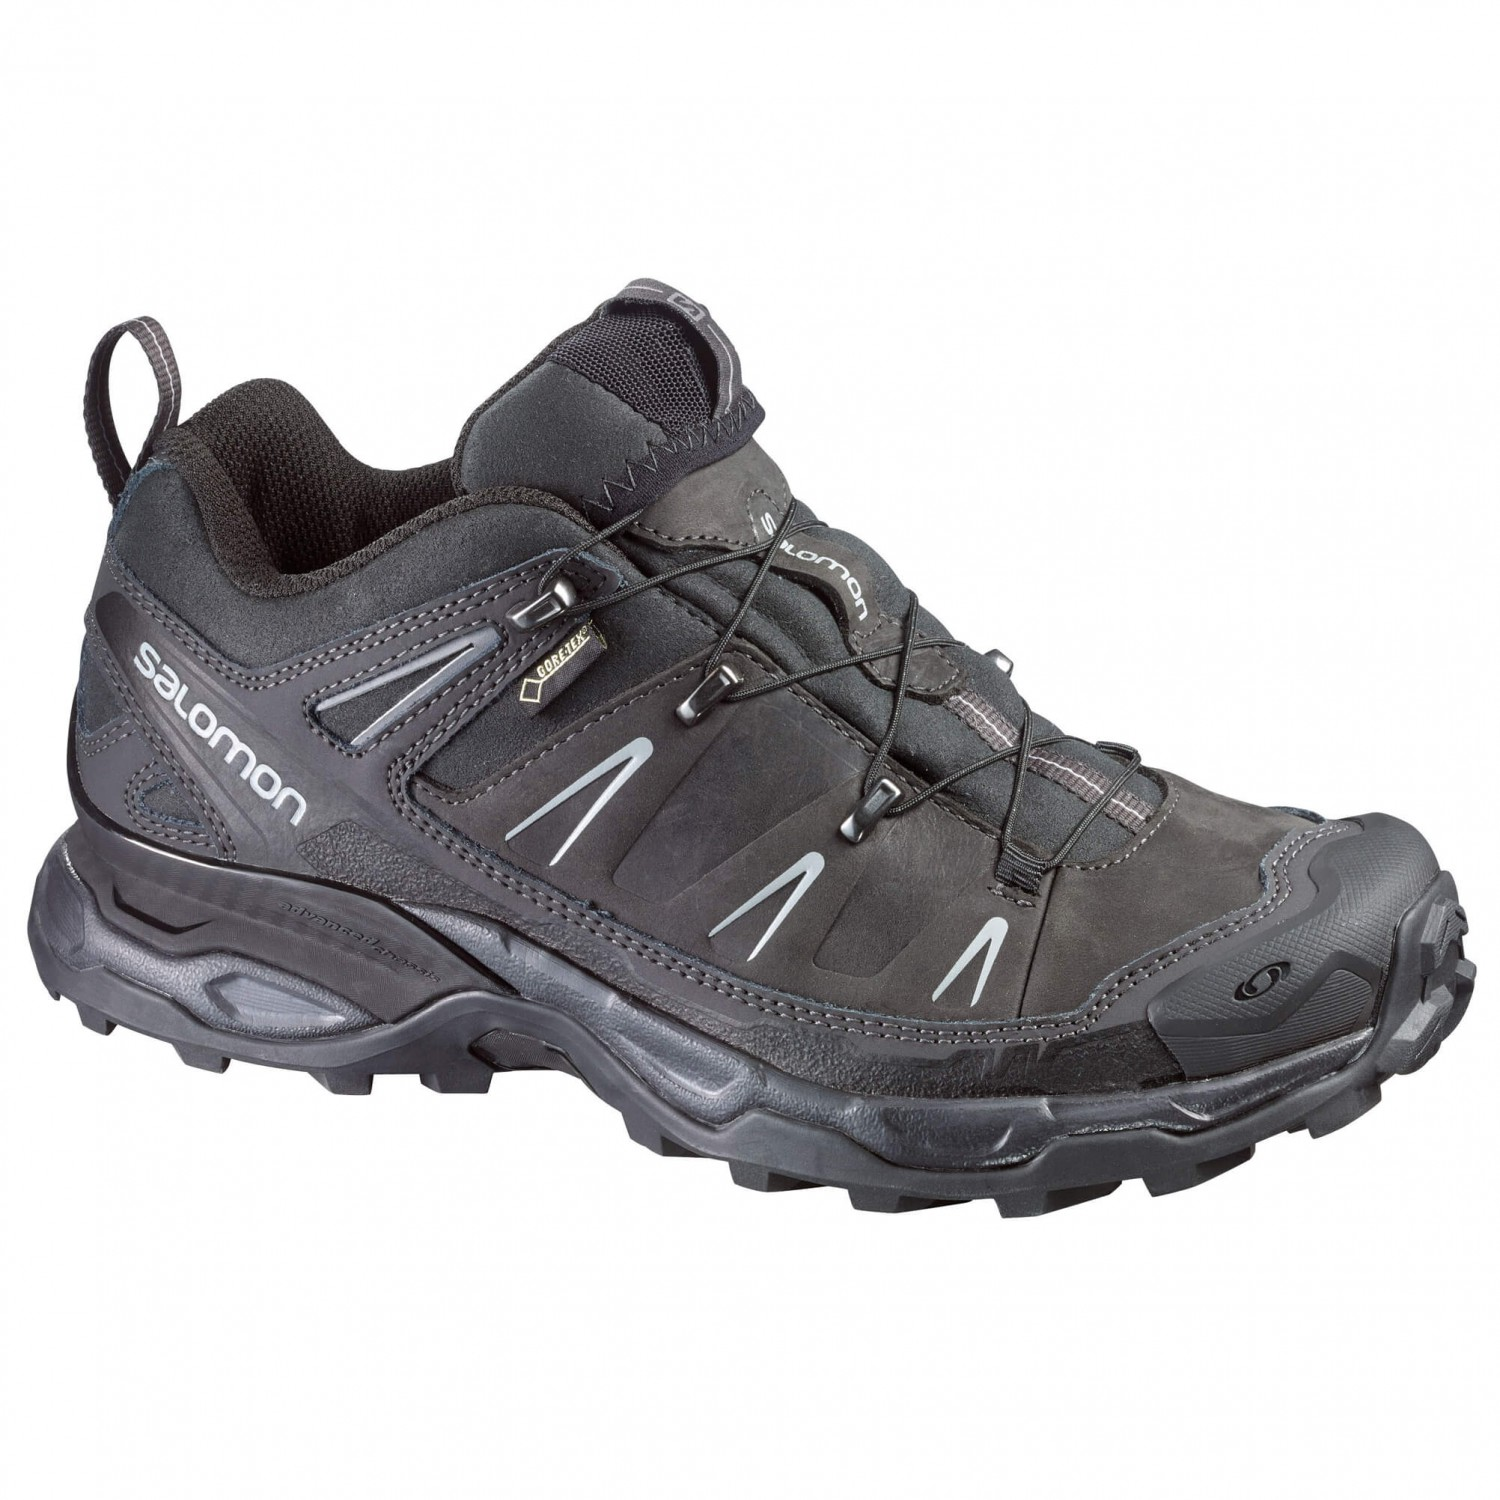 Salomon - X-Ultra LTR GTX - Approachschuhe Asphalt / Black / Pewter